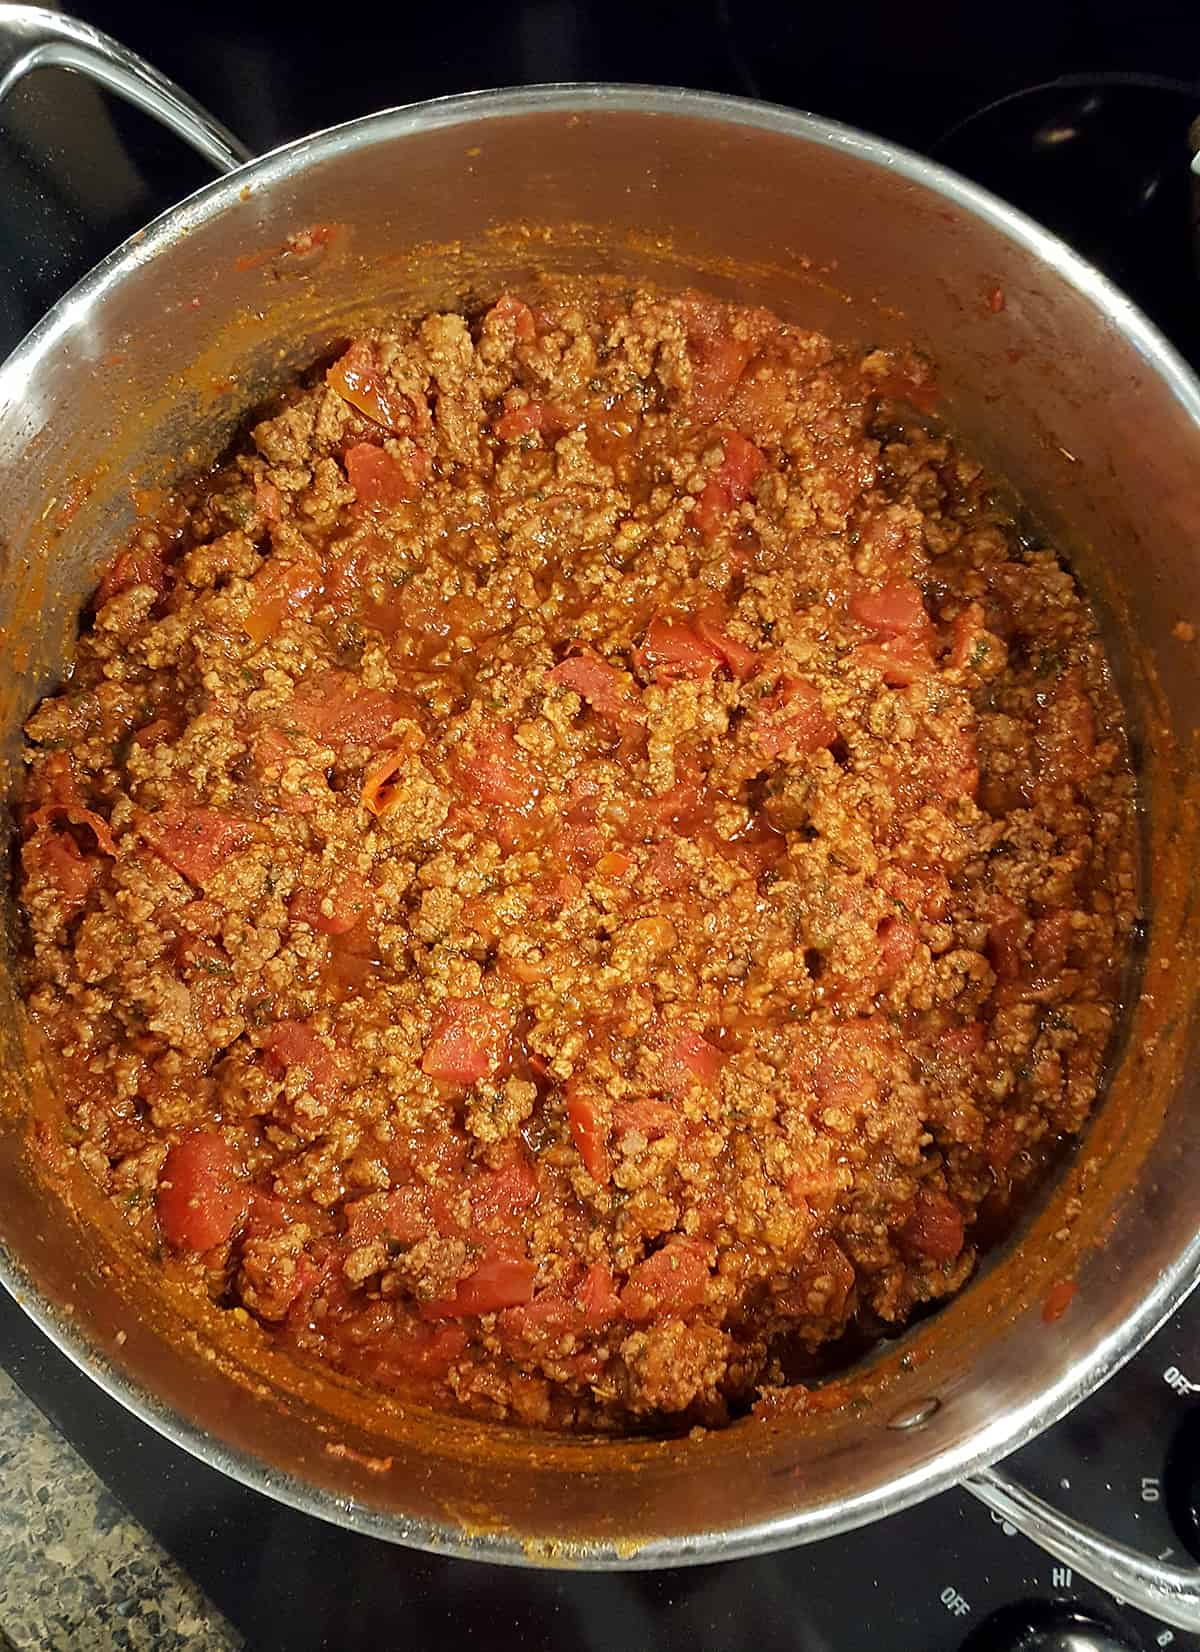 Pan with cooked meat sauce.